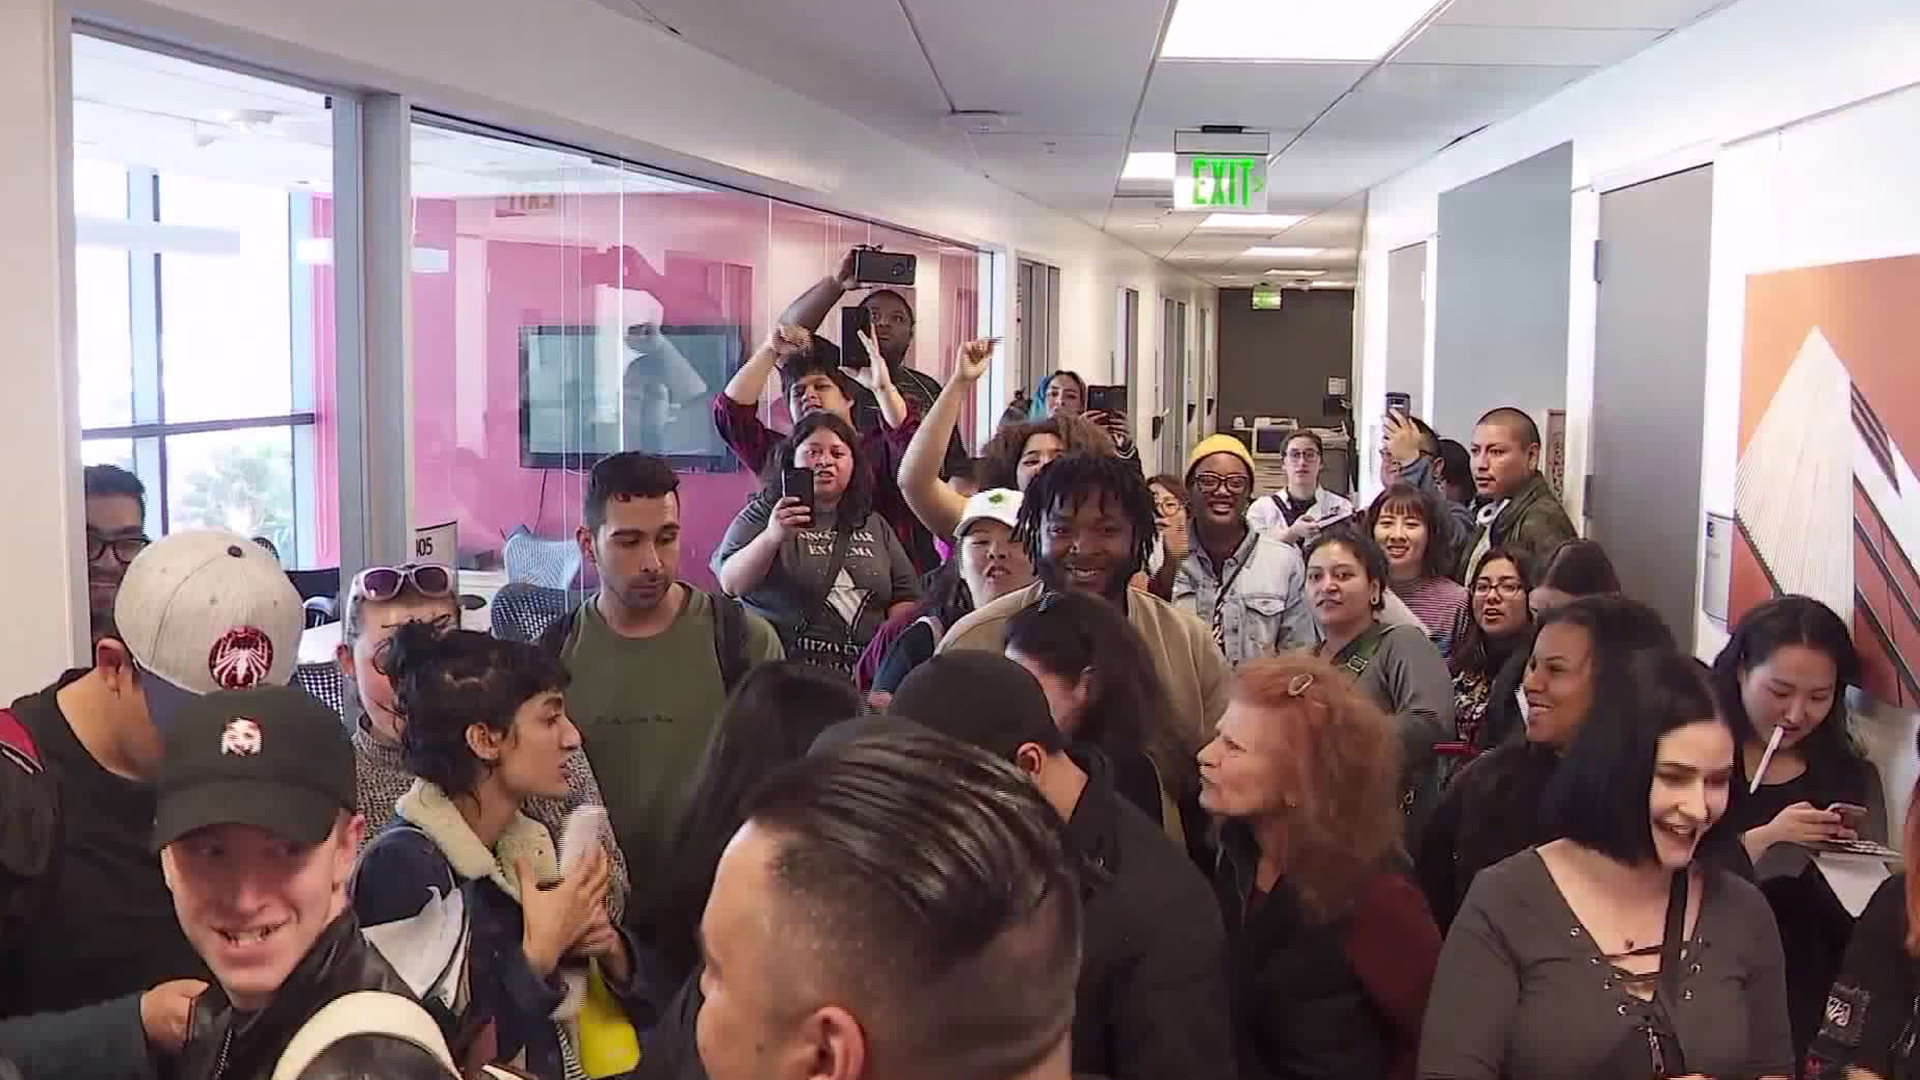 Students crowd a hallway at the Art Institute of California in Hollywood on March 7, 2019. (Credit: KTLA)